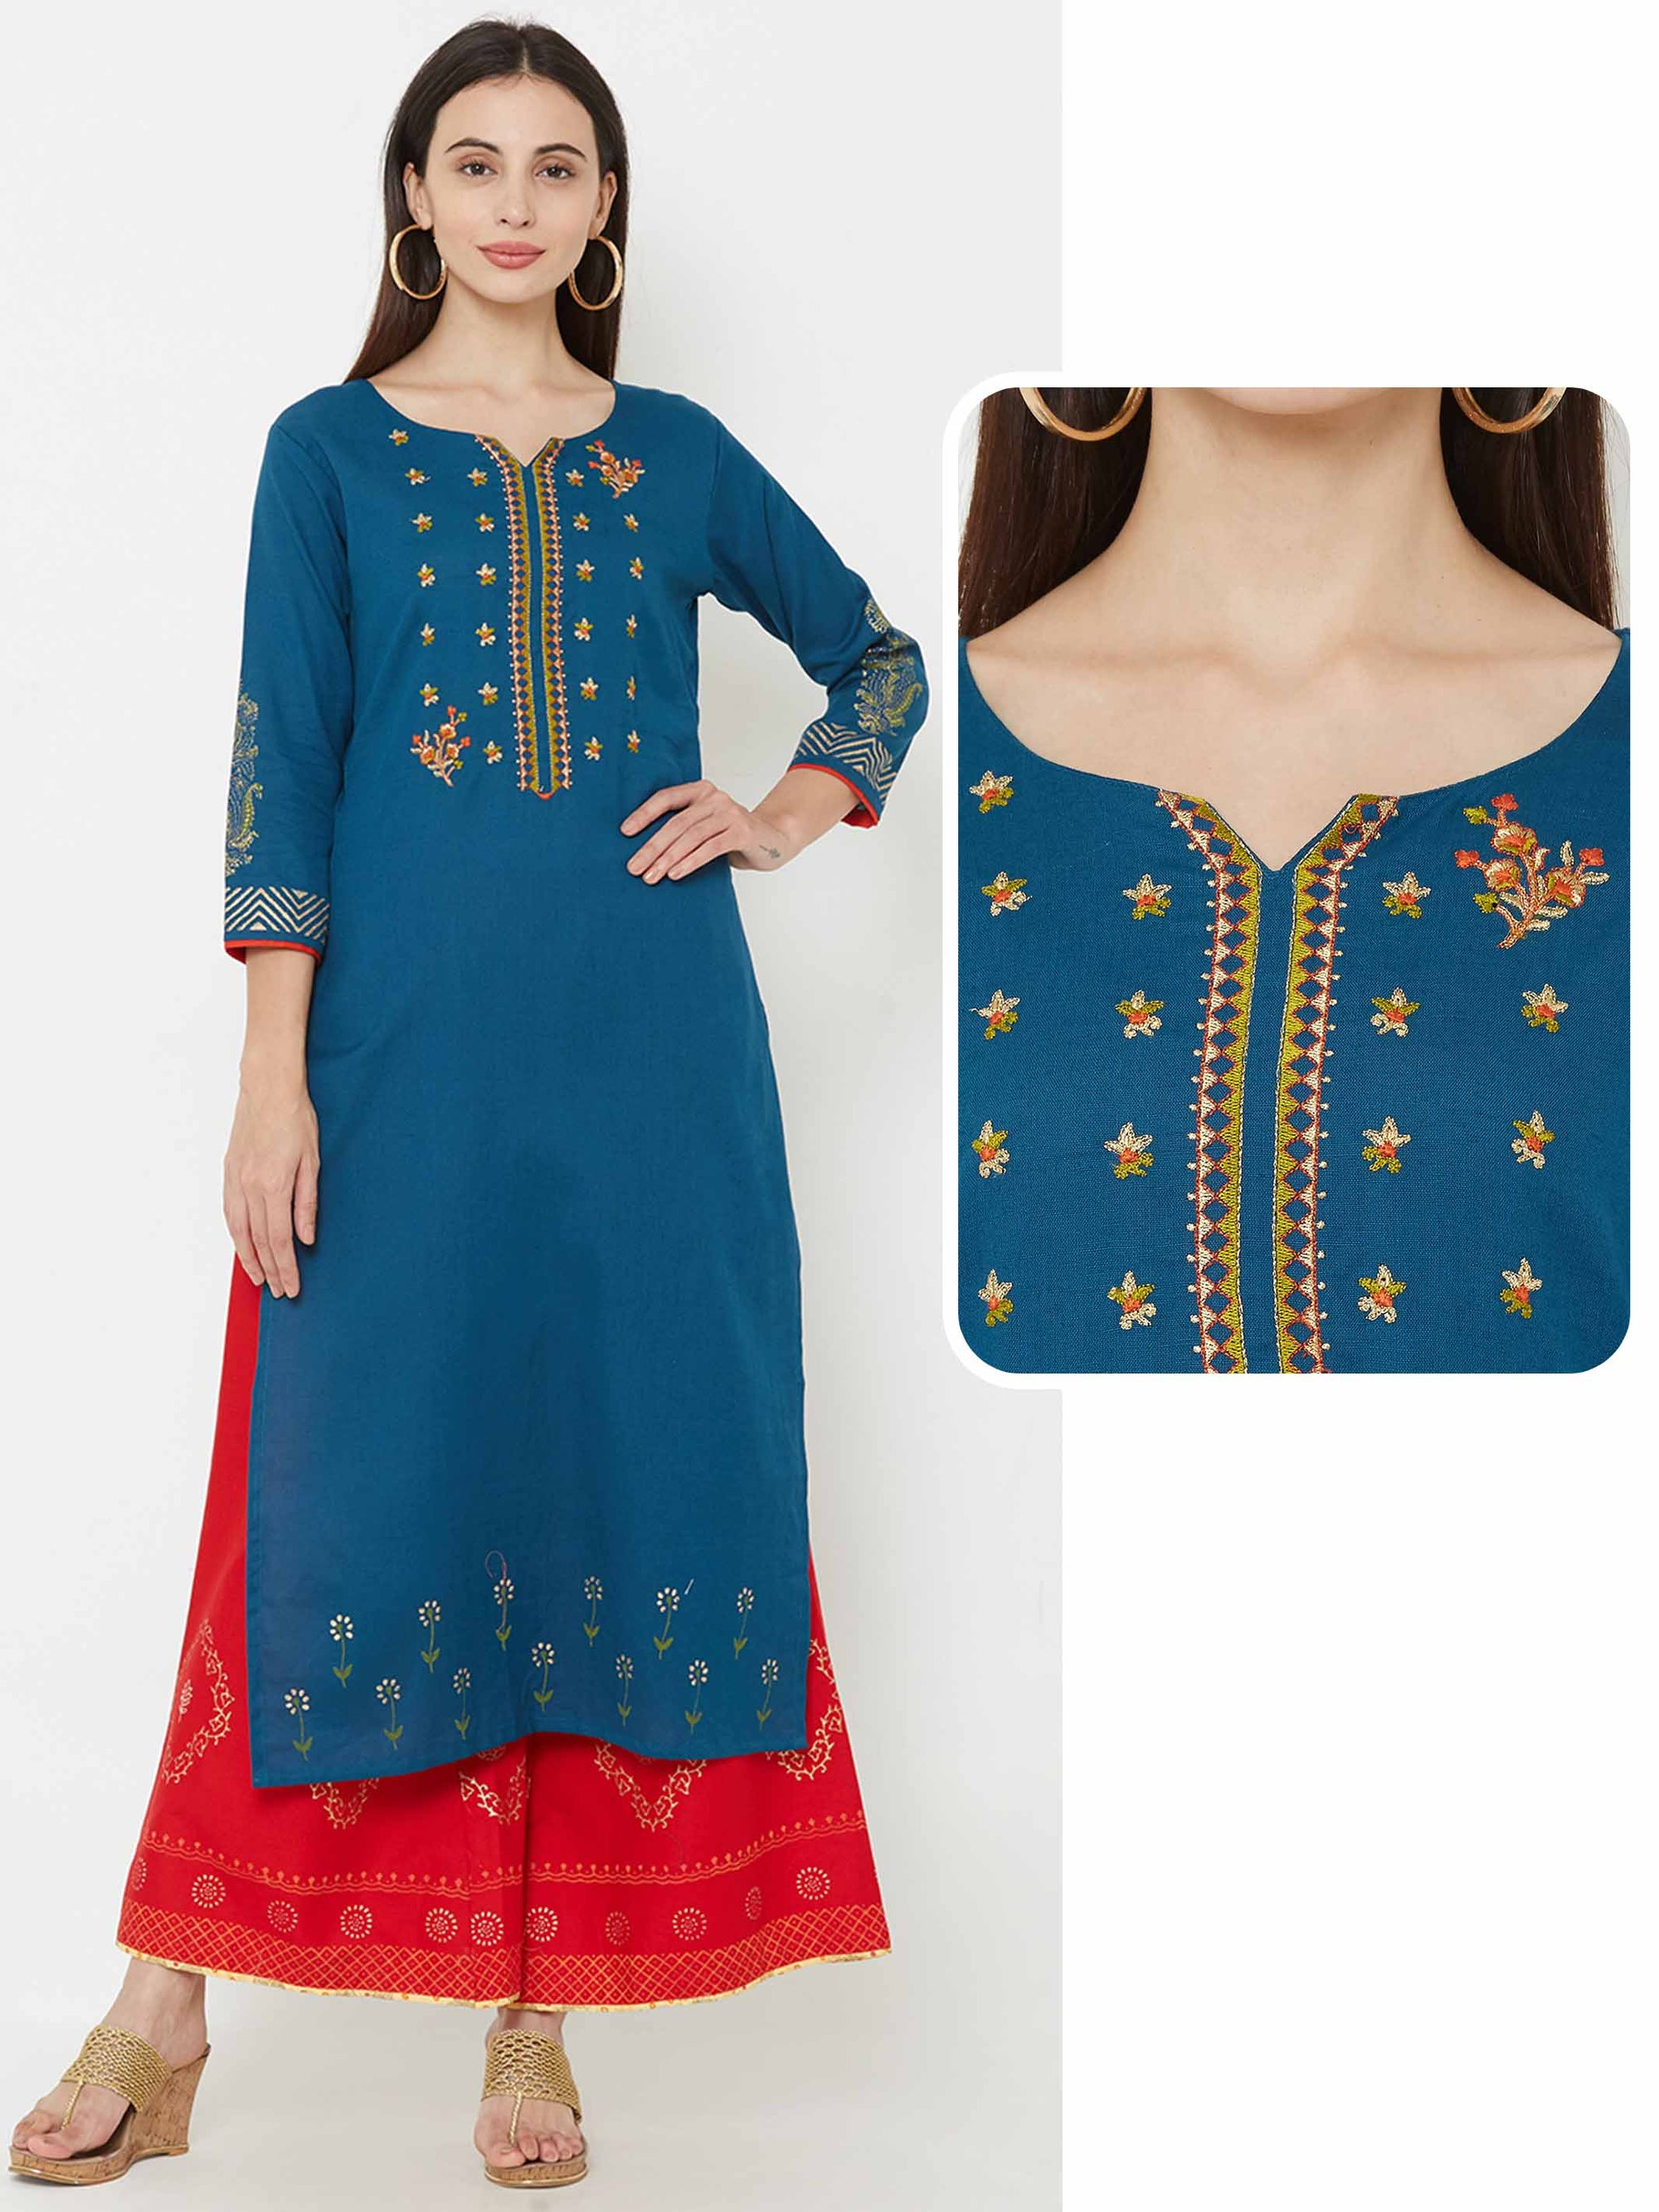 Minimal Floral Embroidered Kurta – Teal Blue